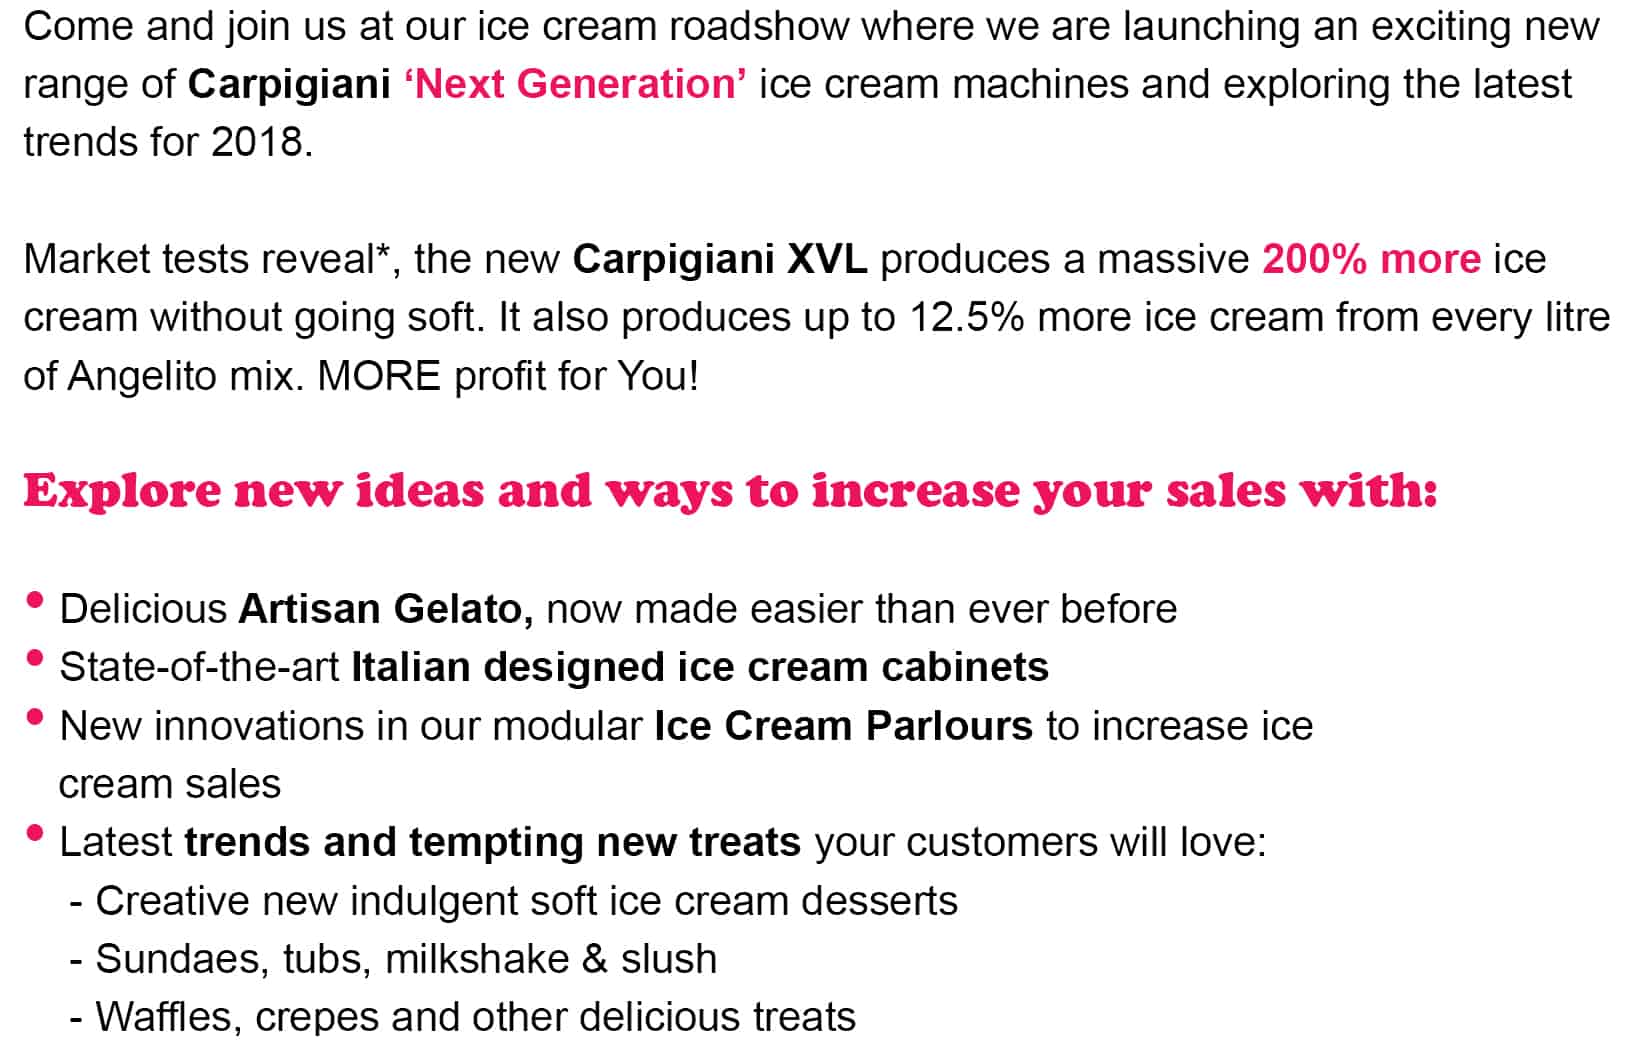 Text For Ice Cream Roadshows